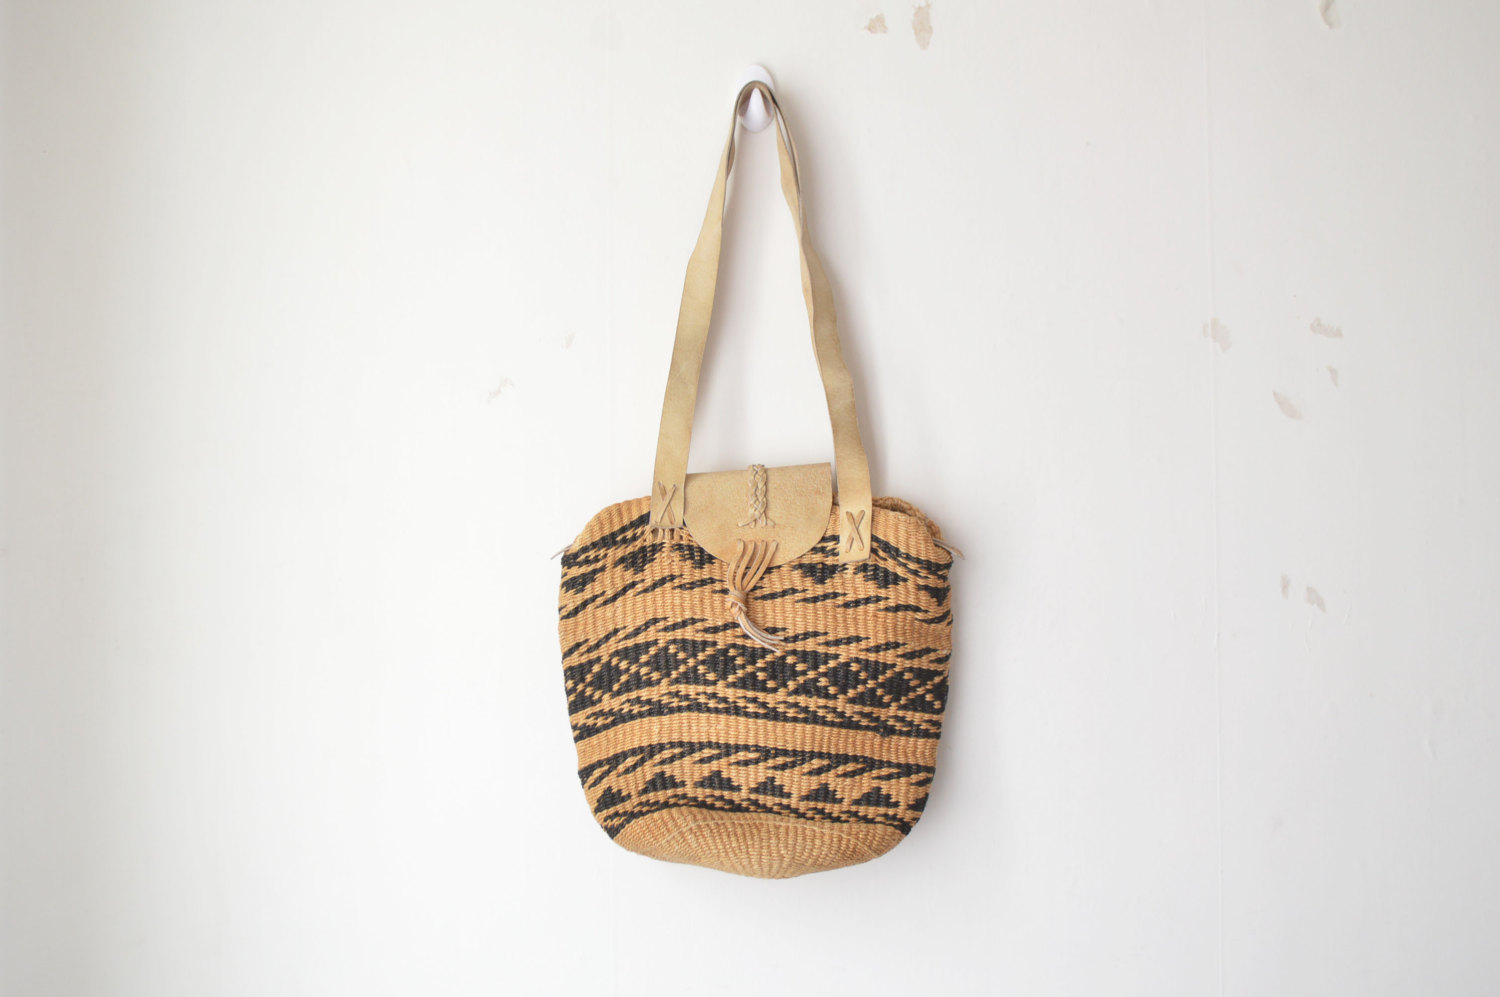 Sisal Bag Peppermint magazine's vintage Etsy shopping guide – sustainable fashion